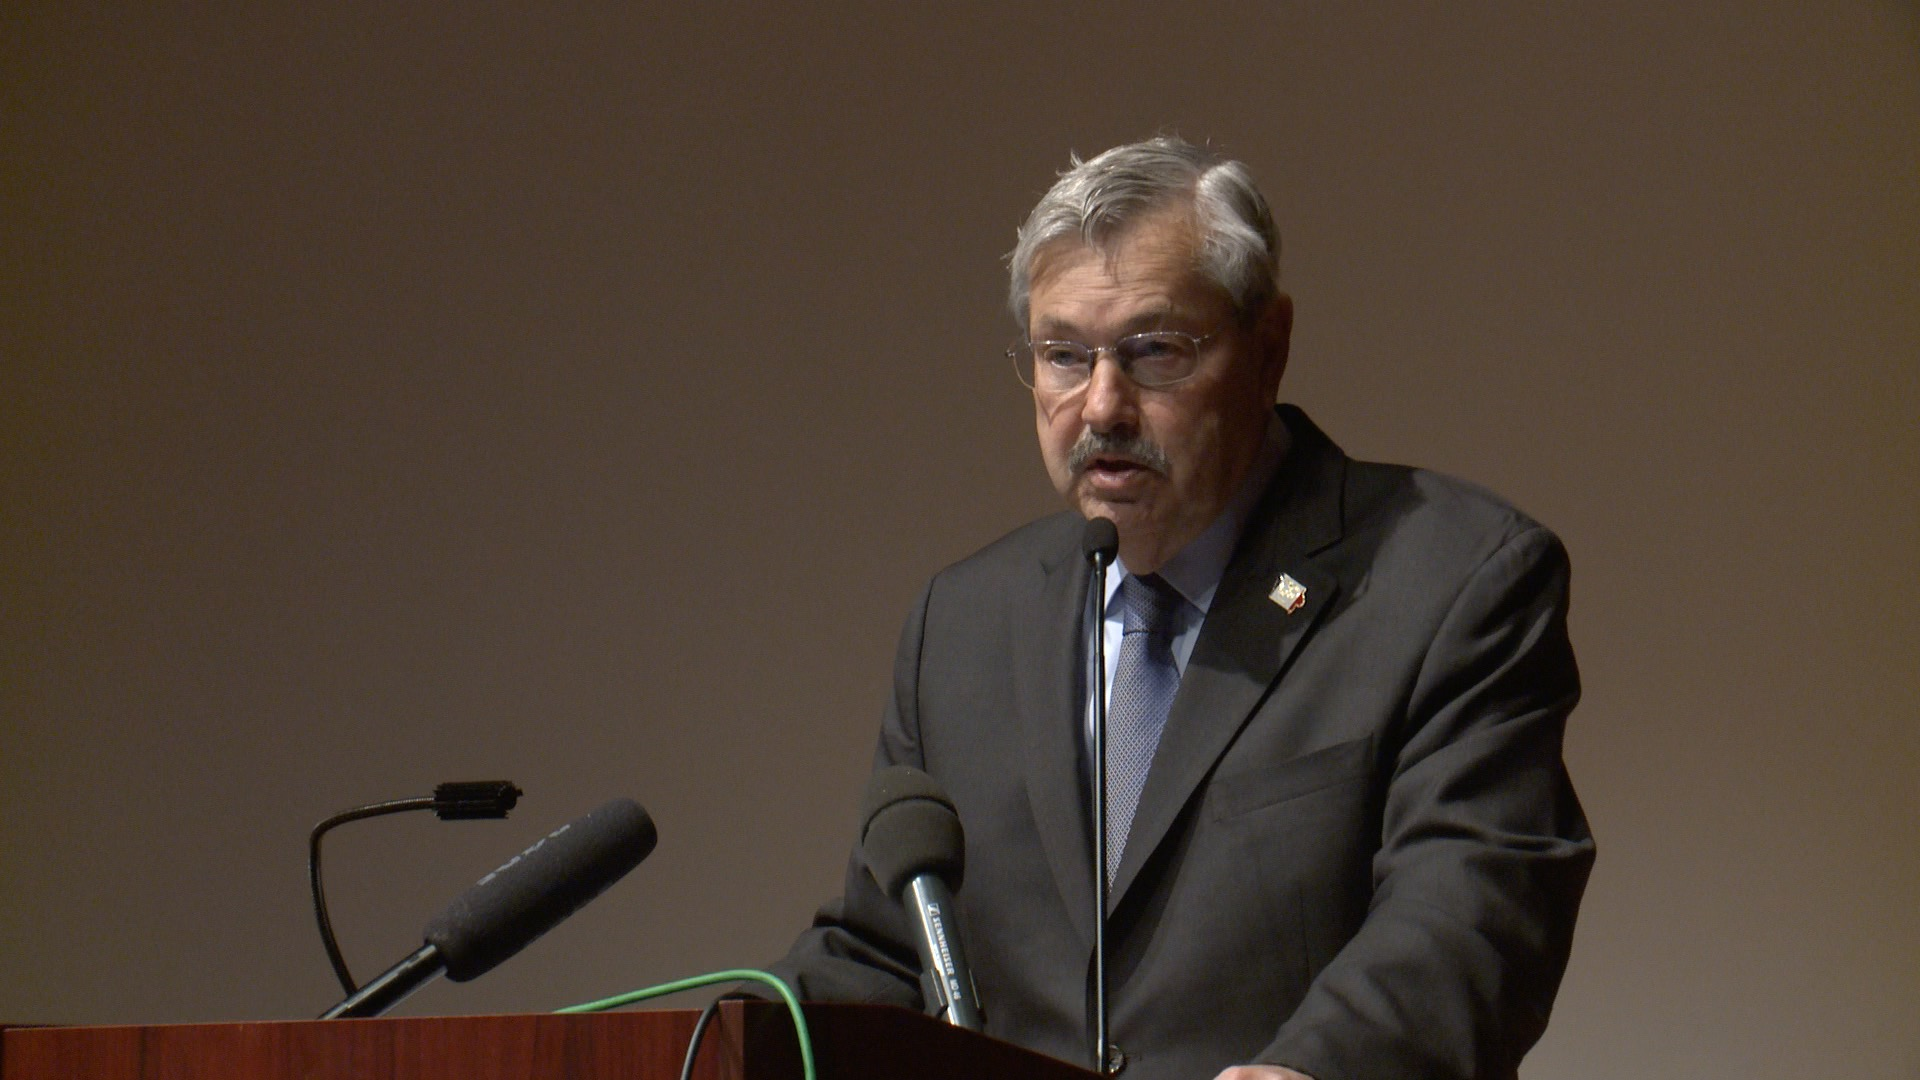 Governor Branstad speaking before the Iowa School Choice Summit in Des Moines (Roger Riley WHO-HD)